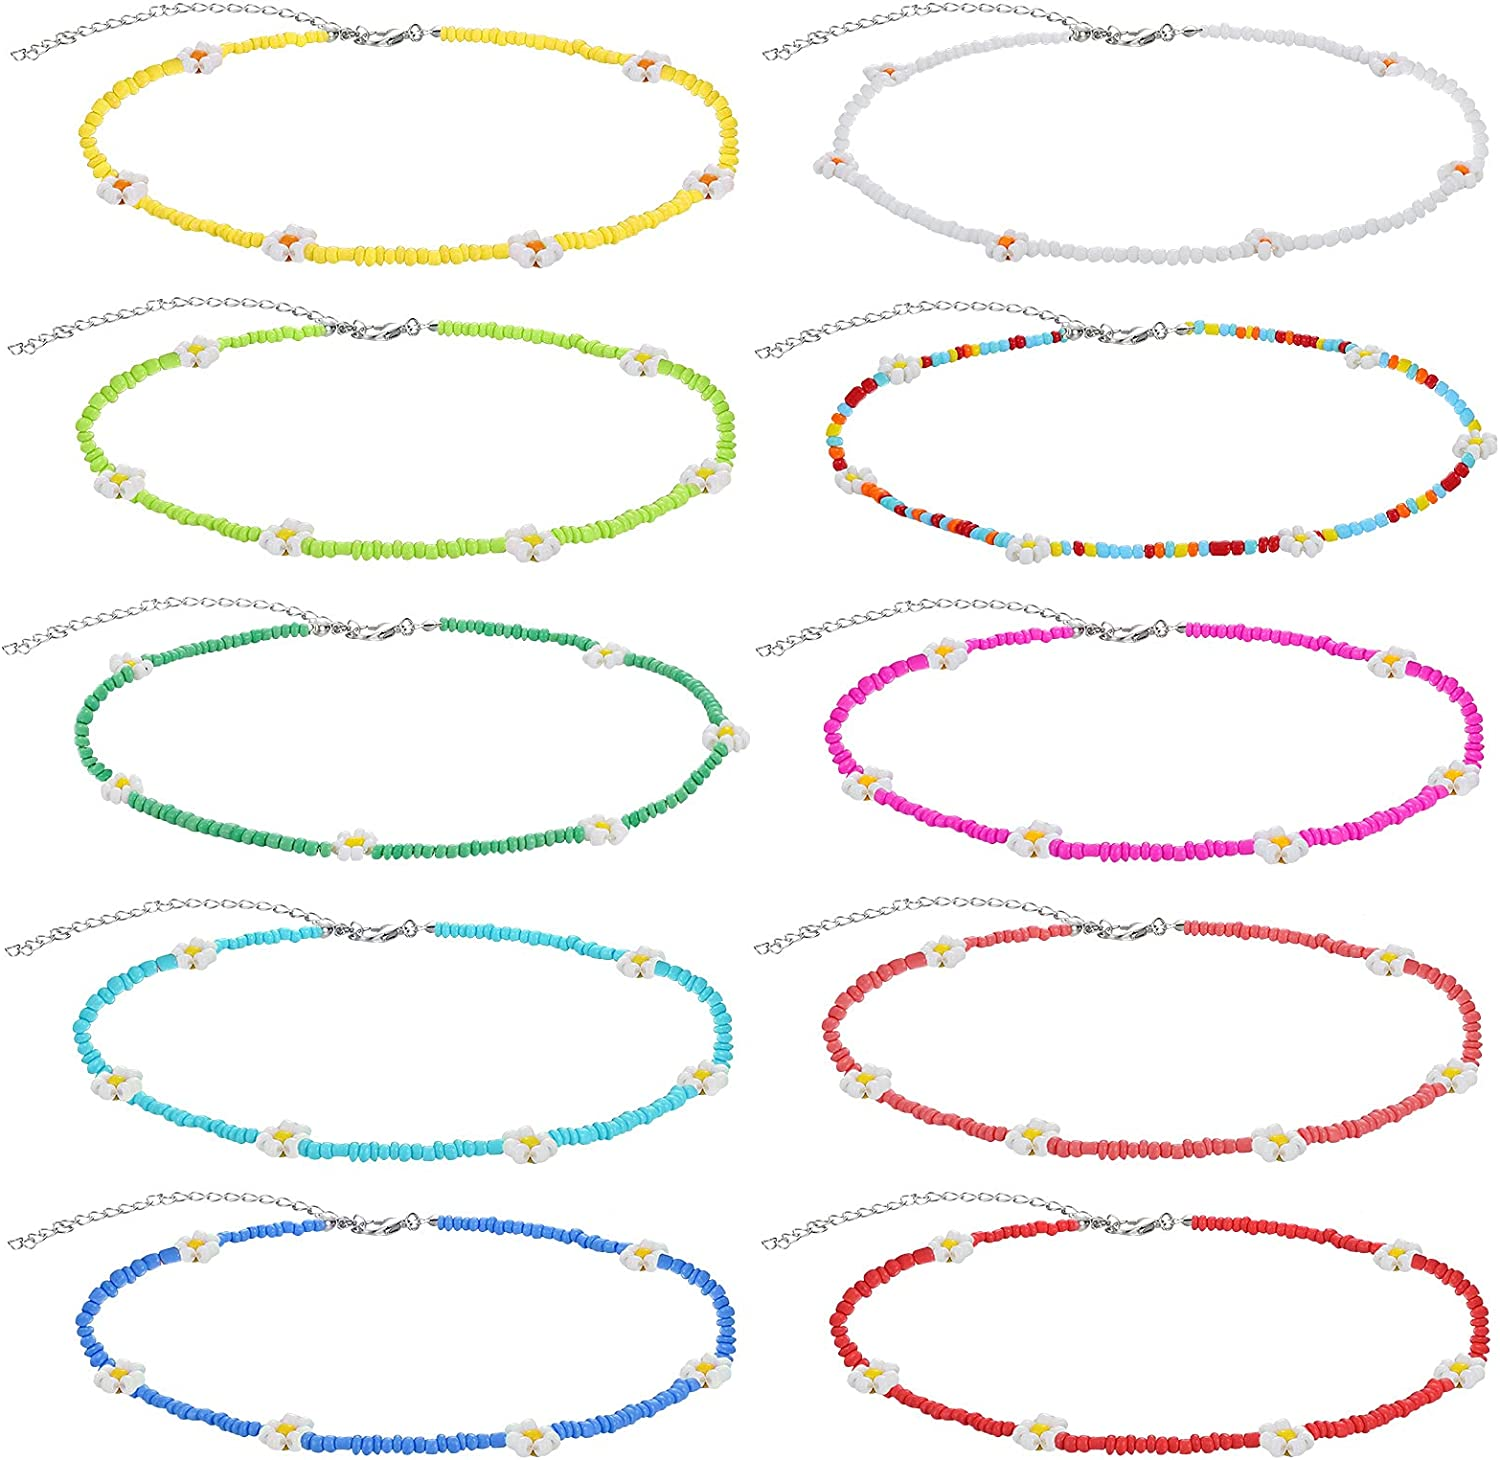 10 Pieces Daisy Boho Beaded Choker Necklace Bohemian Necklaces Seed Bead Necklaces Glass Beaded Choker Jewelry for Women and Girls